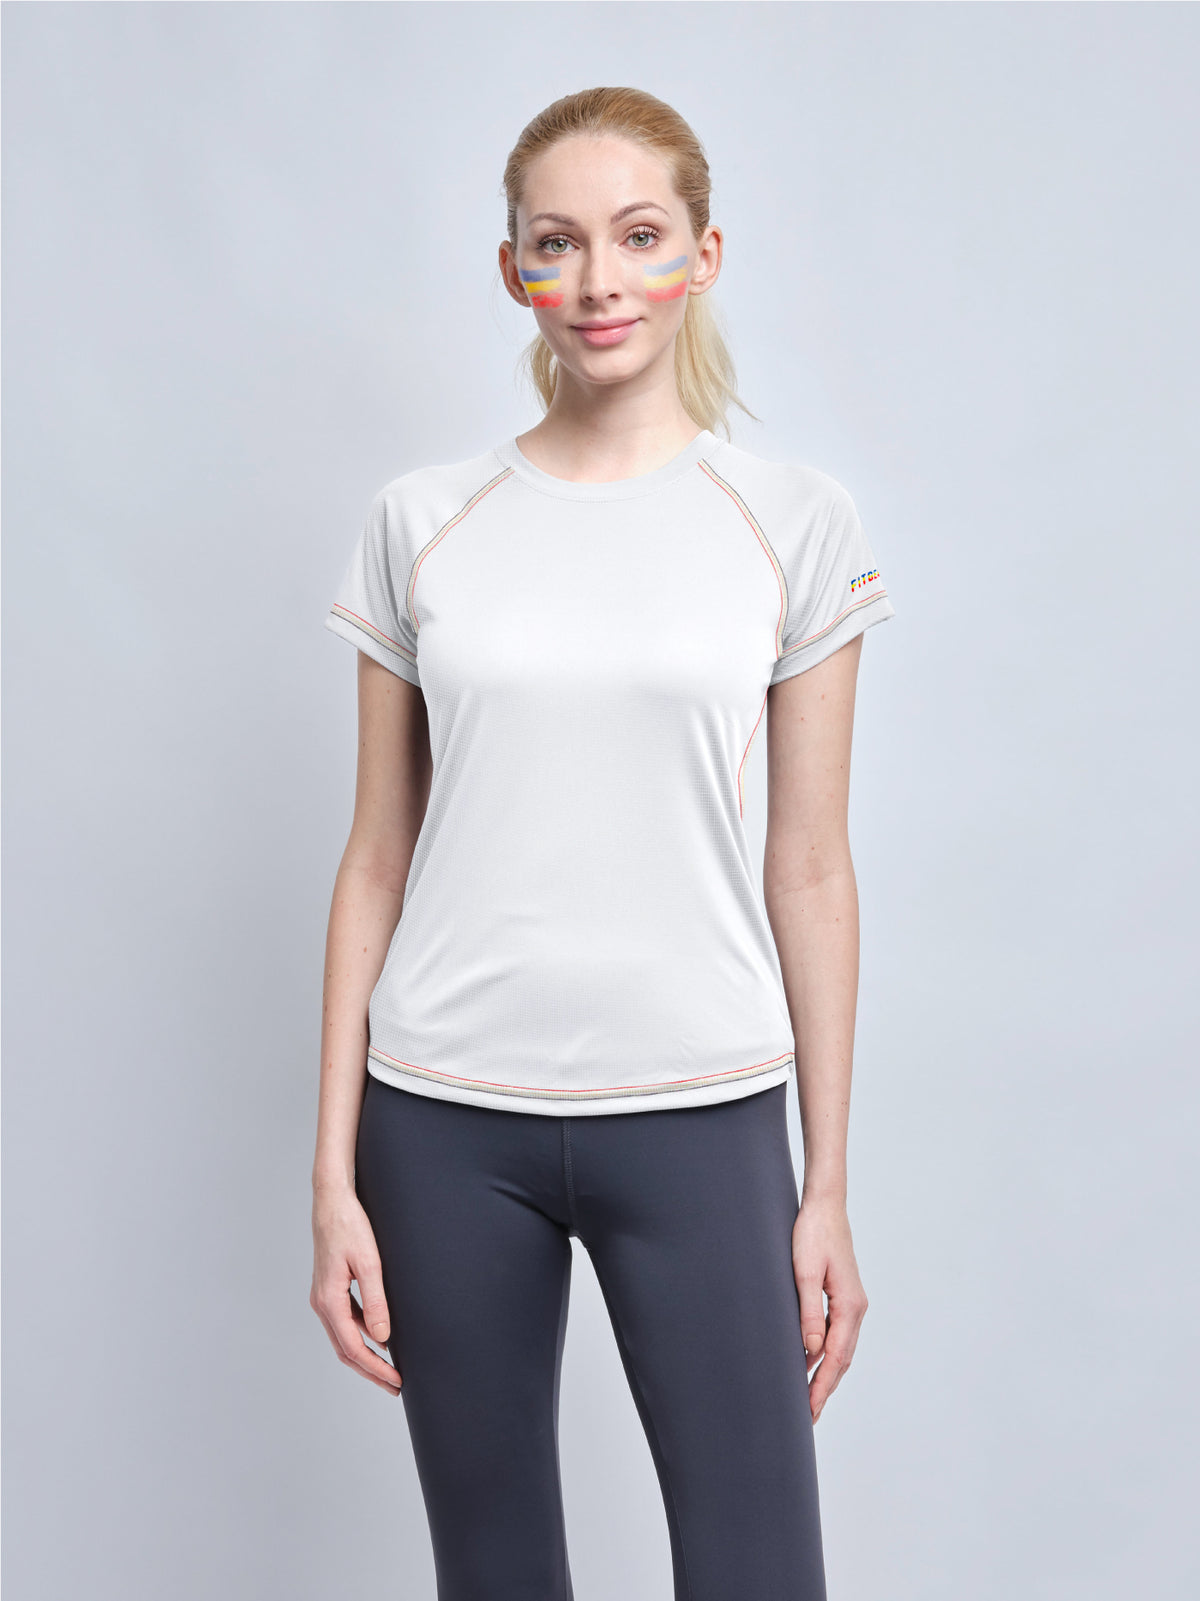 Merdeka Limited Edition T-Shirt Women (Slim Fit)